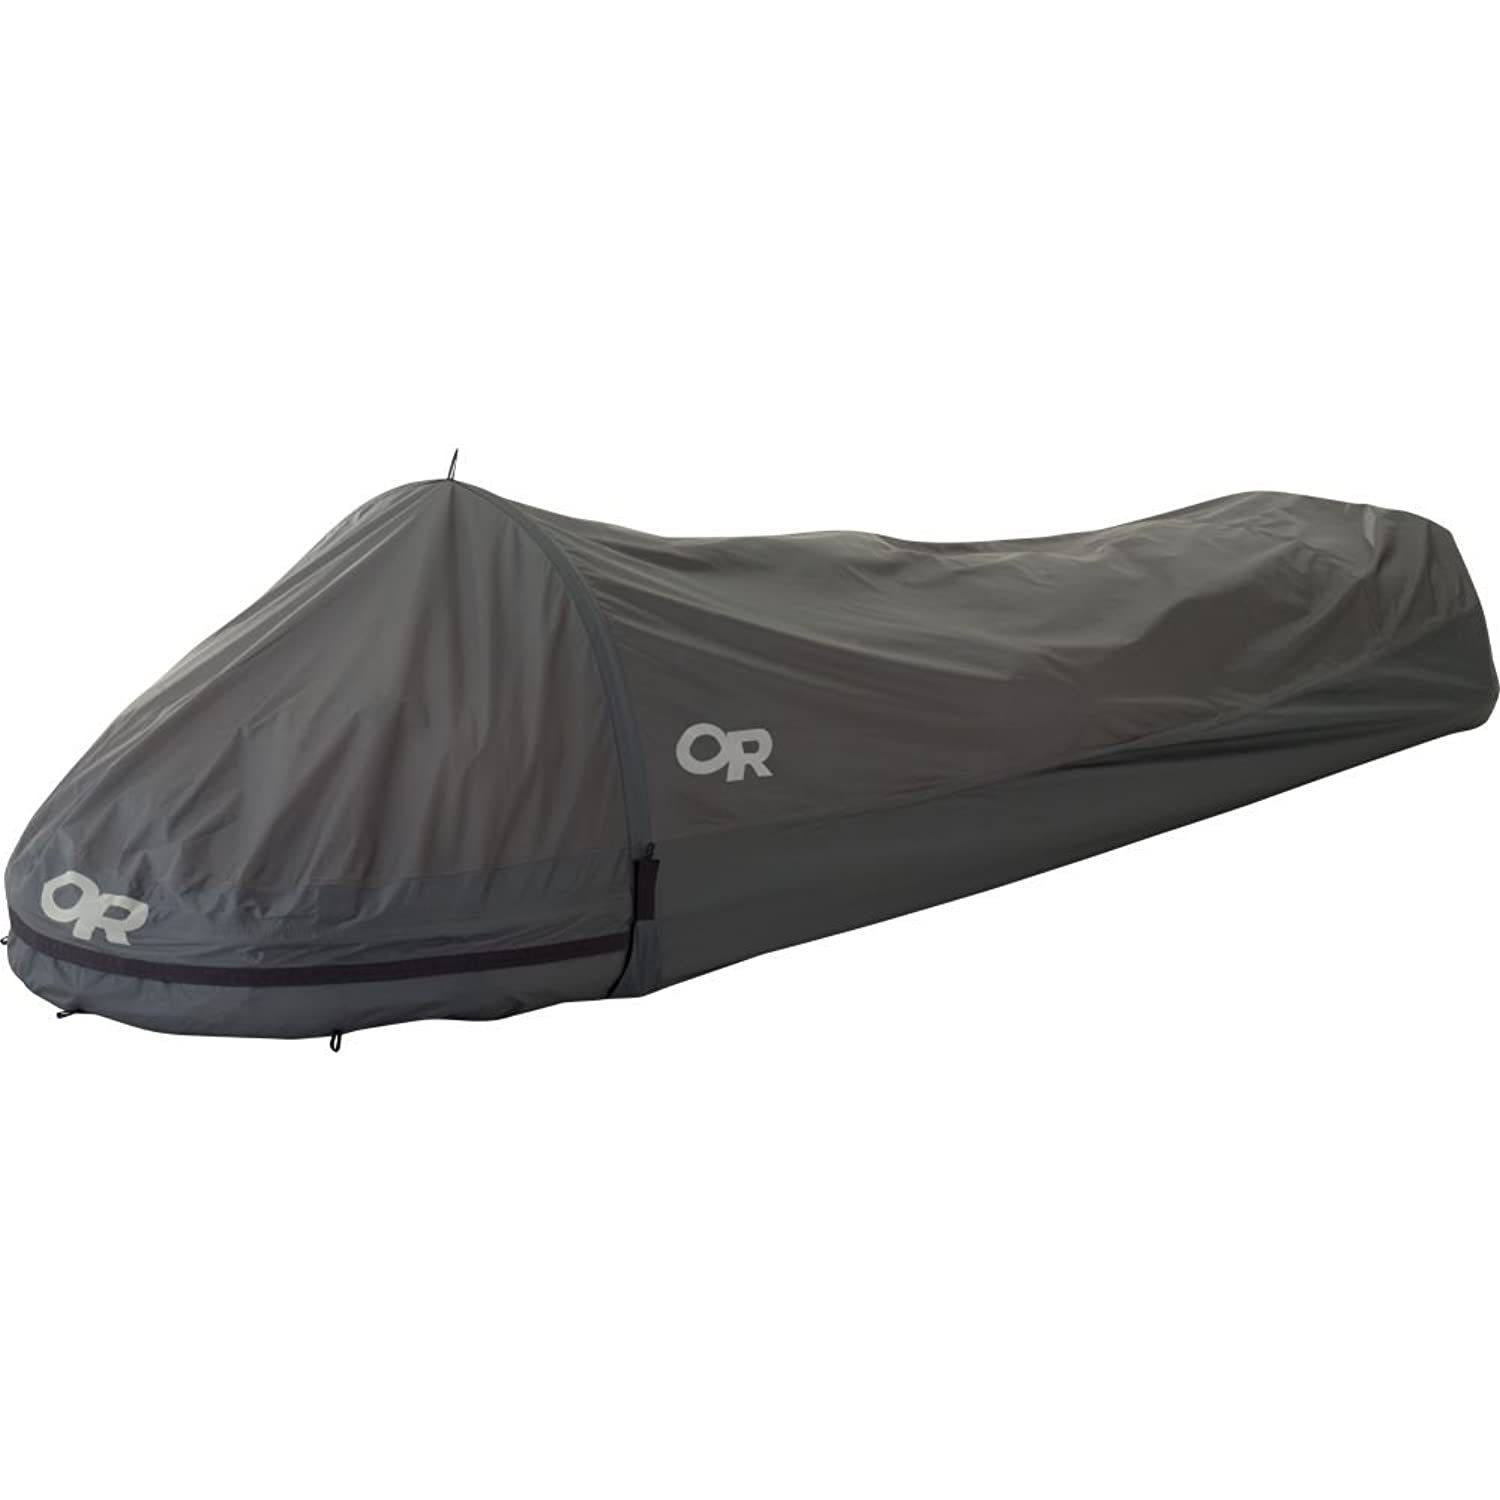 Amazon.com  Outdoor Research 242828 Helium Bivy Pewter 1size  Sports u0026 Outdoors  sc 1 st  Amazon.com & Amazon.com : Outdoor Research 242828 Helium Bivy Pewter 1size ...